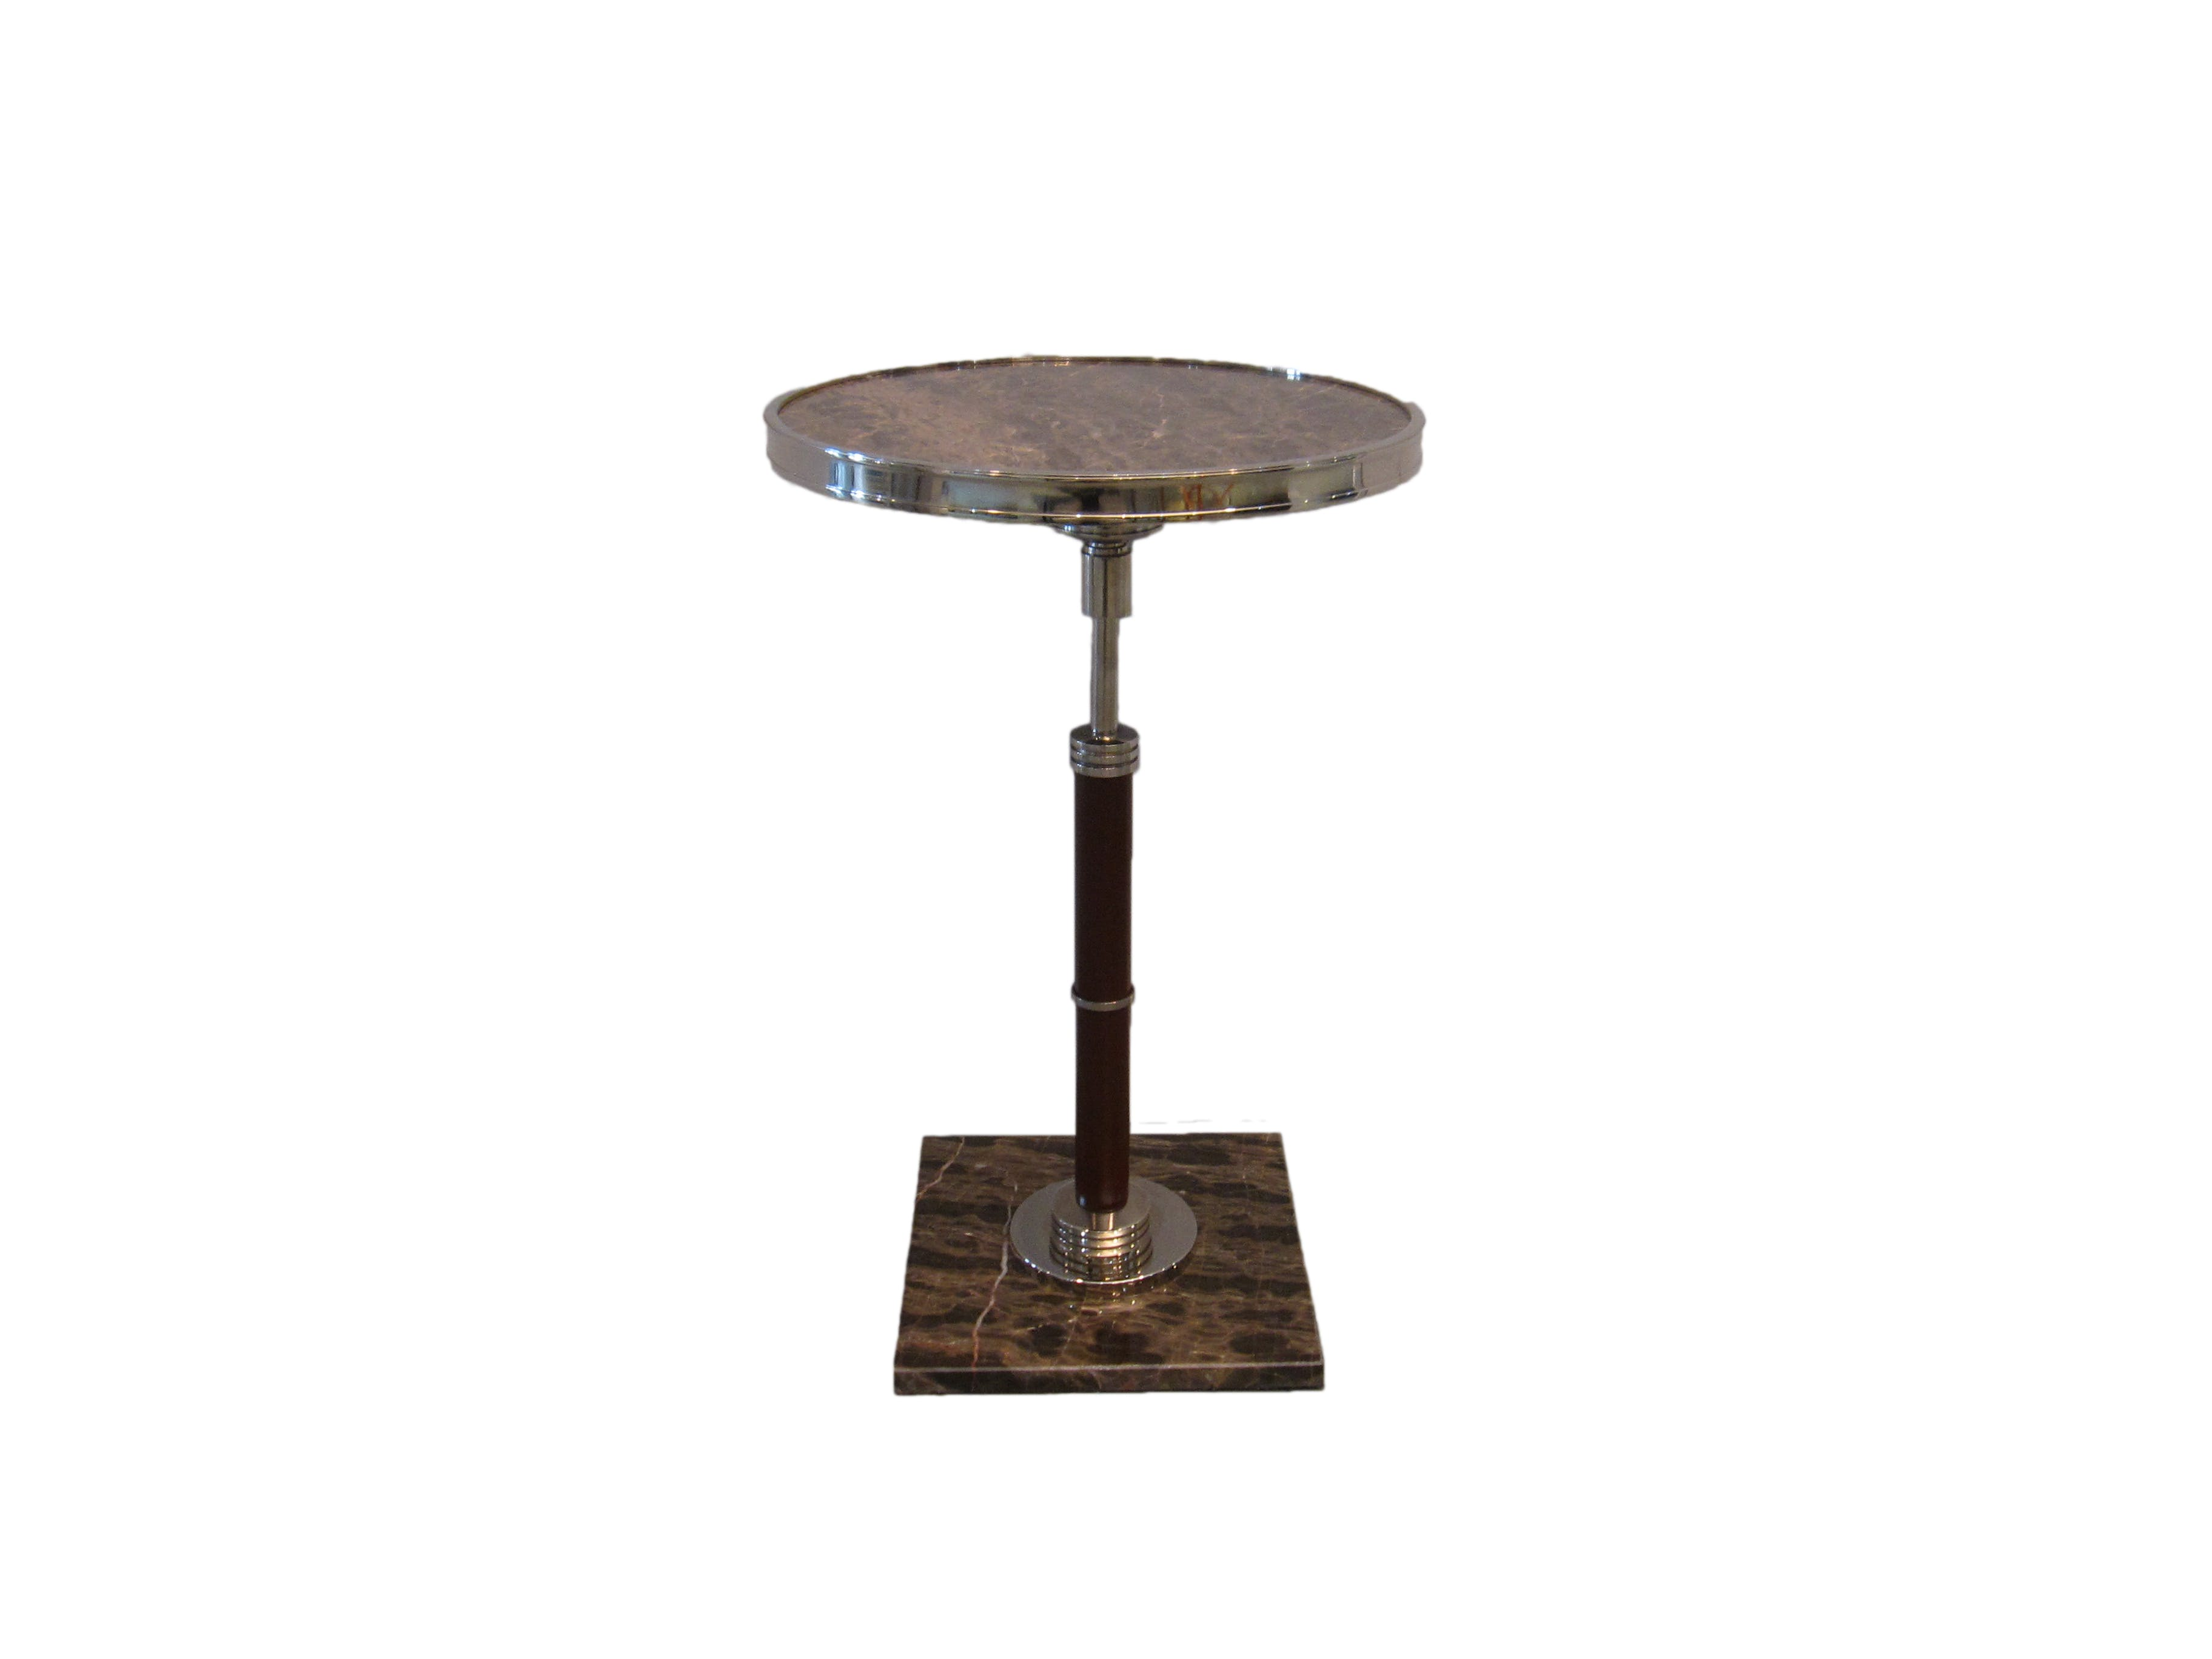 cigar drink accent side table eisenhower consignment marble top polished nickel west elm adjustable metal floor lamp night stand light rustic hallway modern oak with storage